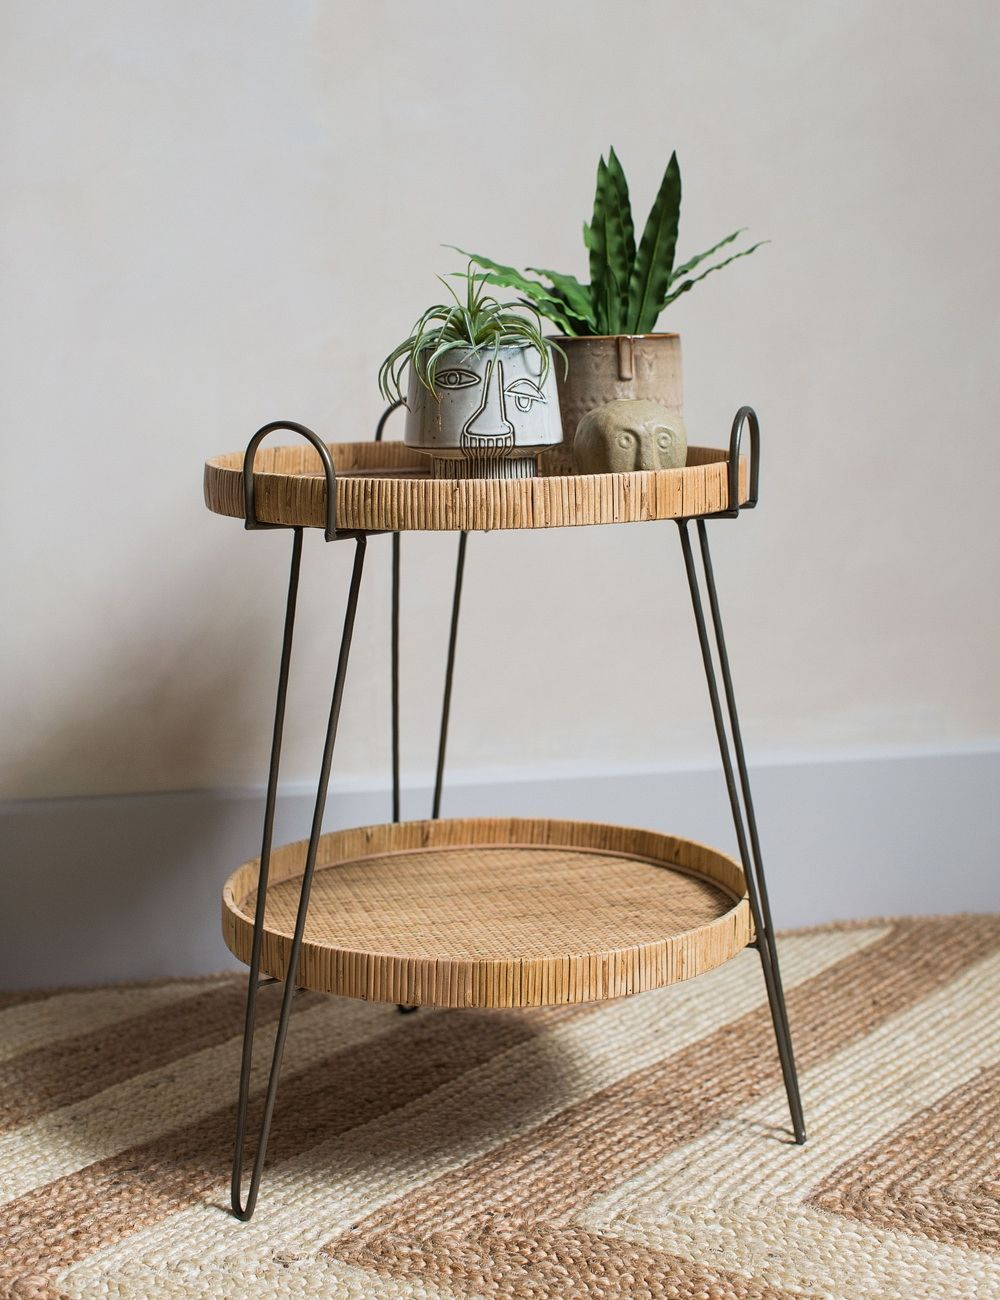 Carrie Two Tier Rattan Side Table In 2020 Side Table Decor Living Room Side Table Decor Side Table Decor Bedroom